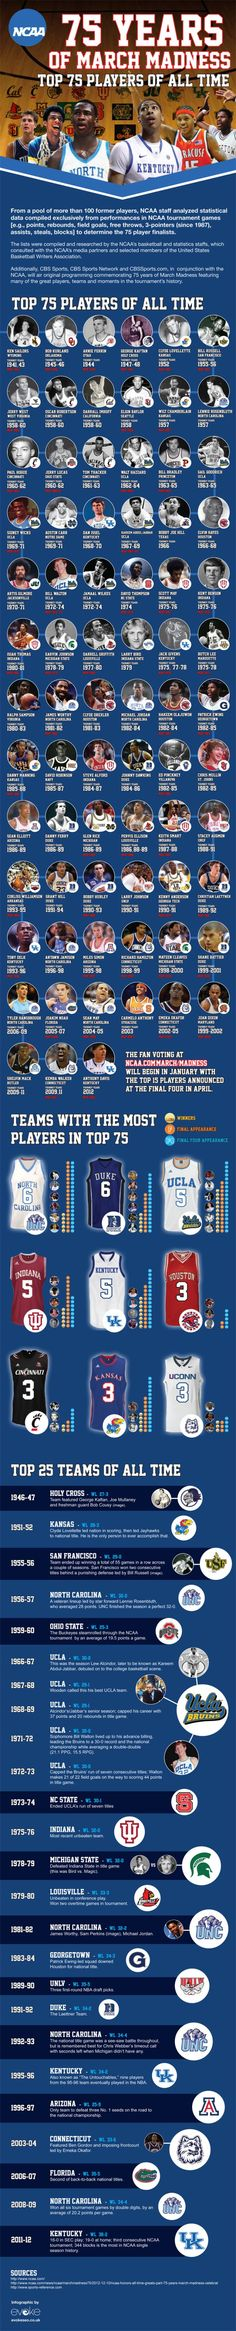 NCAA Top 75 Basketball Players of All Time Infographic. Top 25 Teams selected by the NCAA